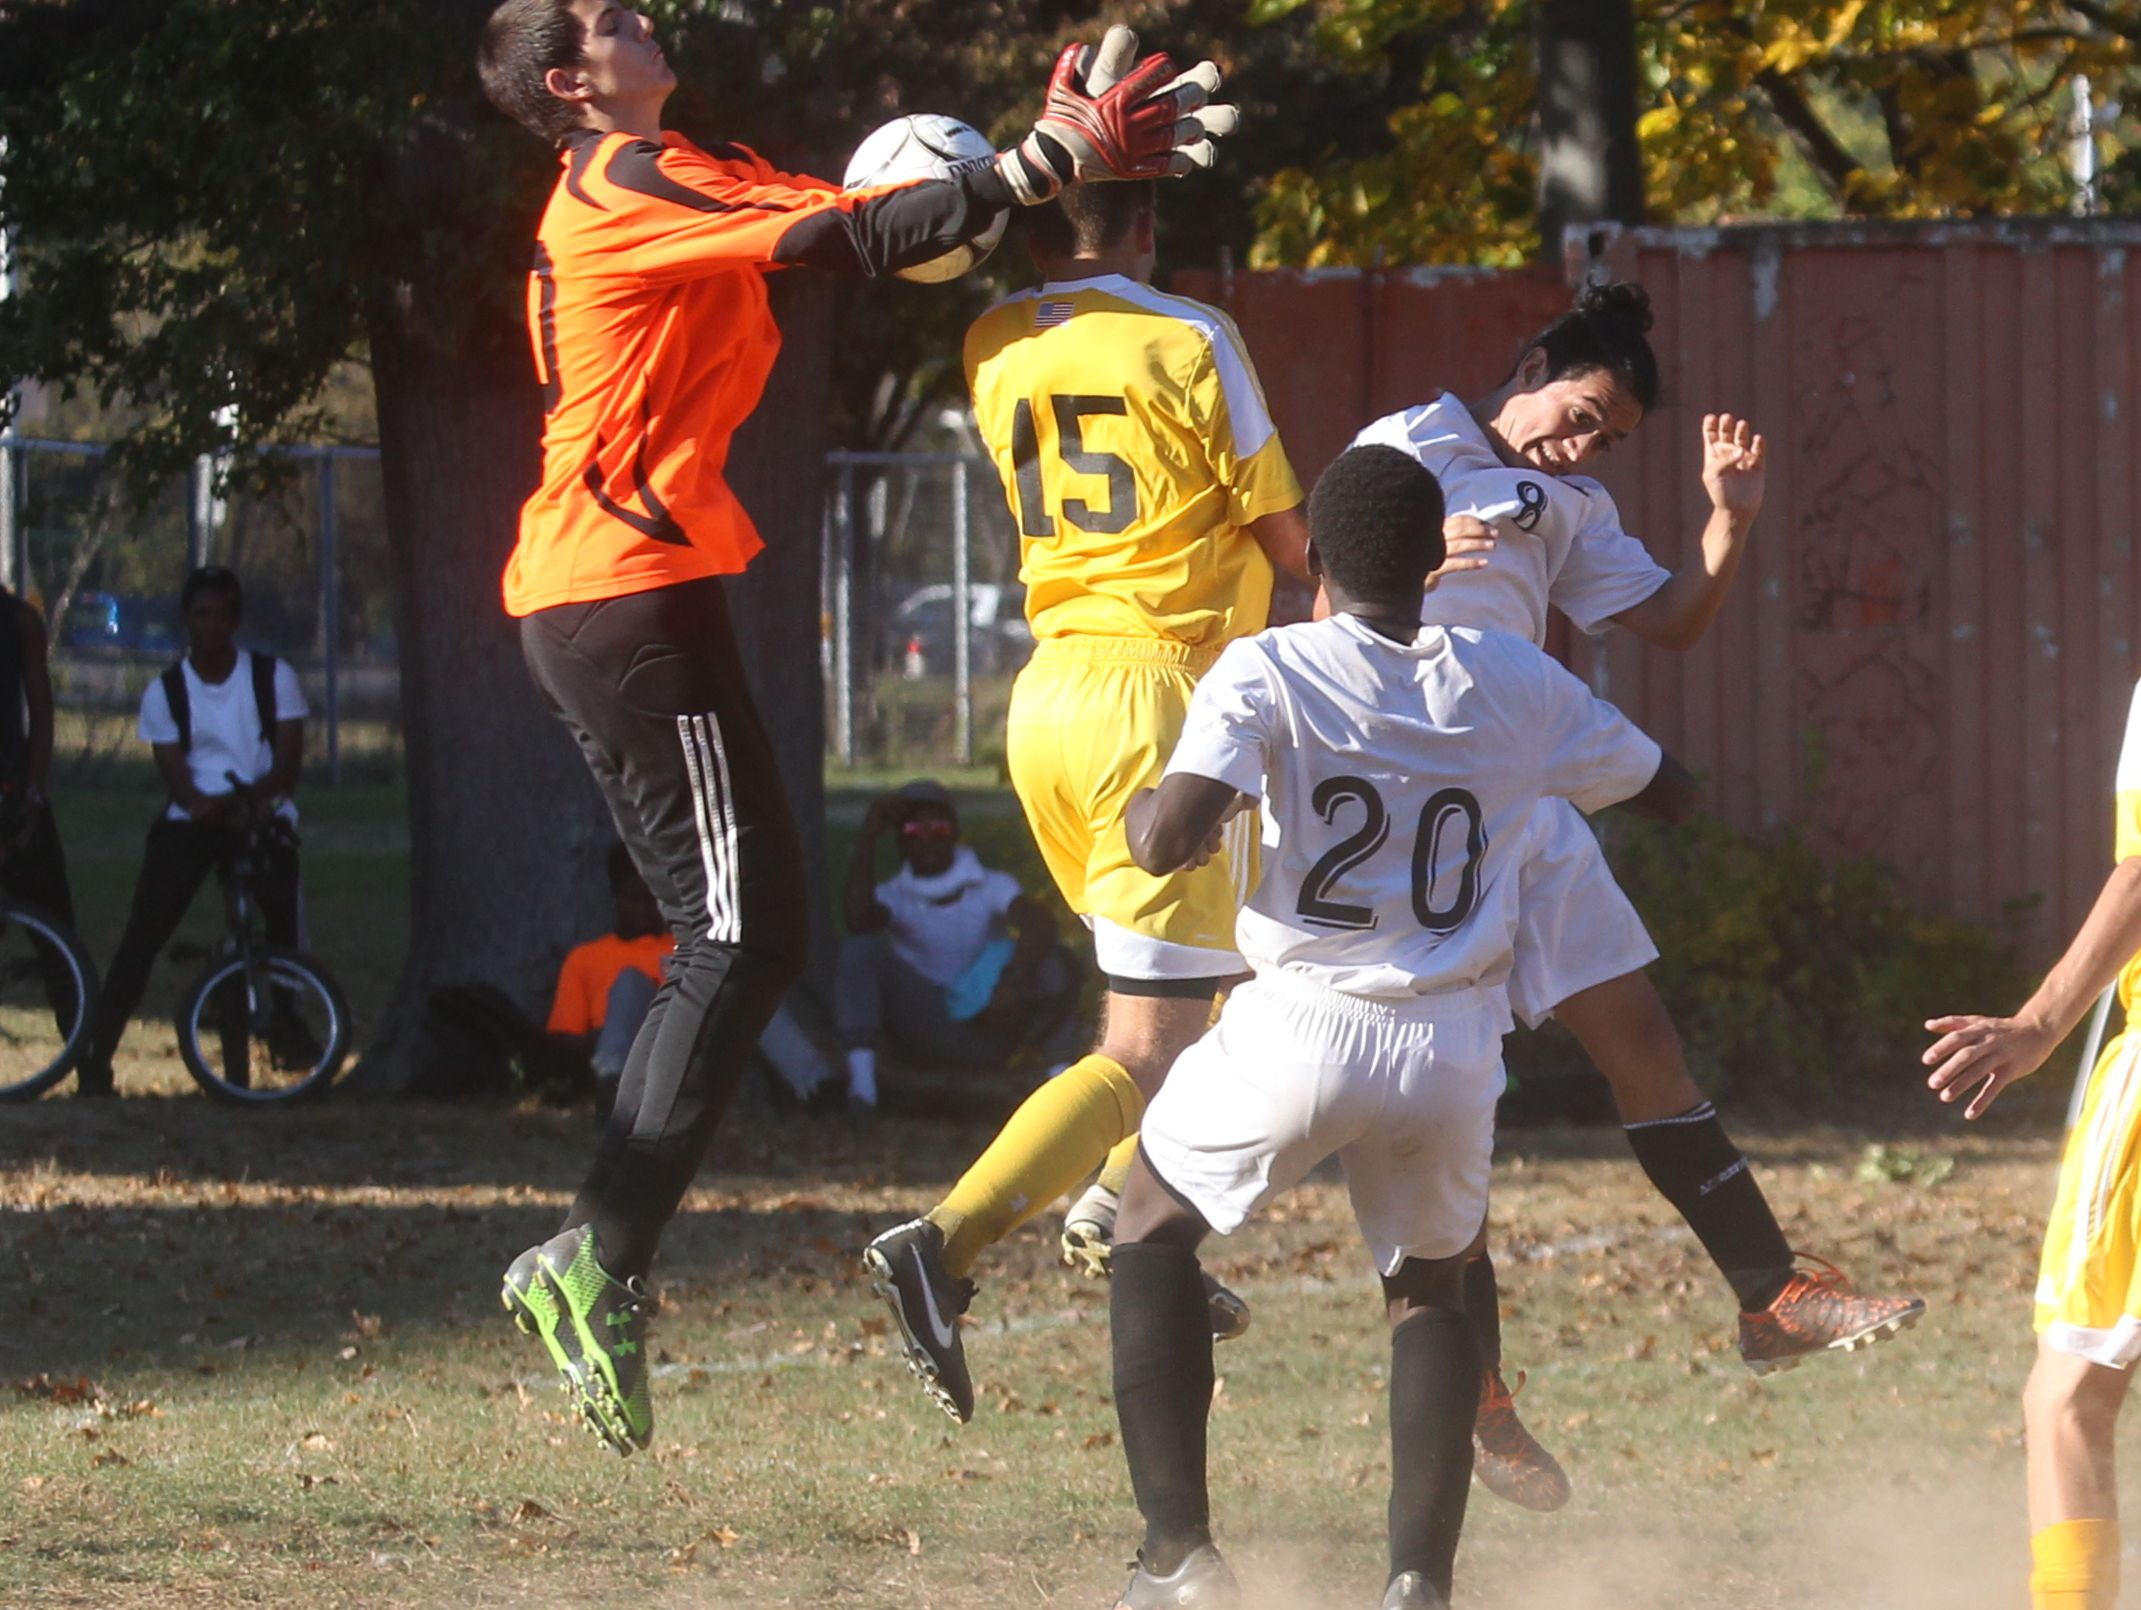 Clarkstown South won 4-2 at Spring Valley in a Class AA boys soccer outbracket game at Spring Valley Oct. 19, 2016.